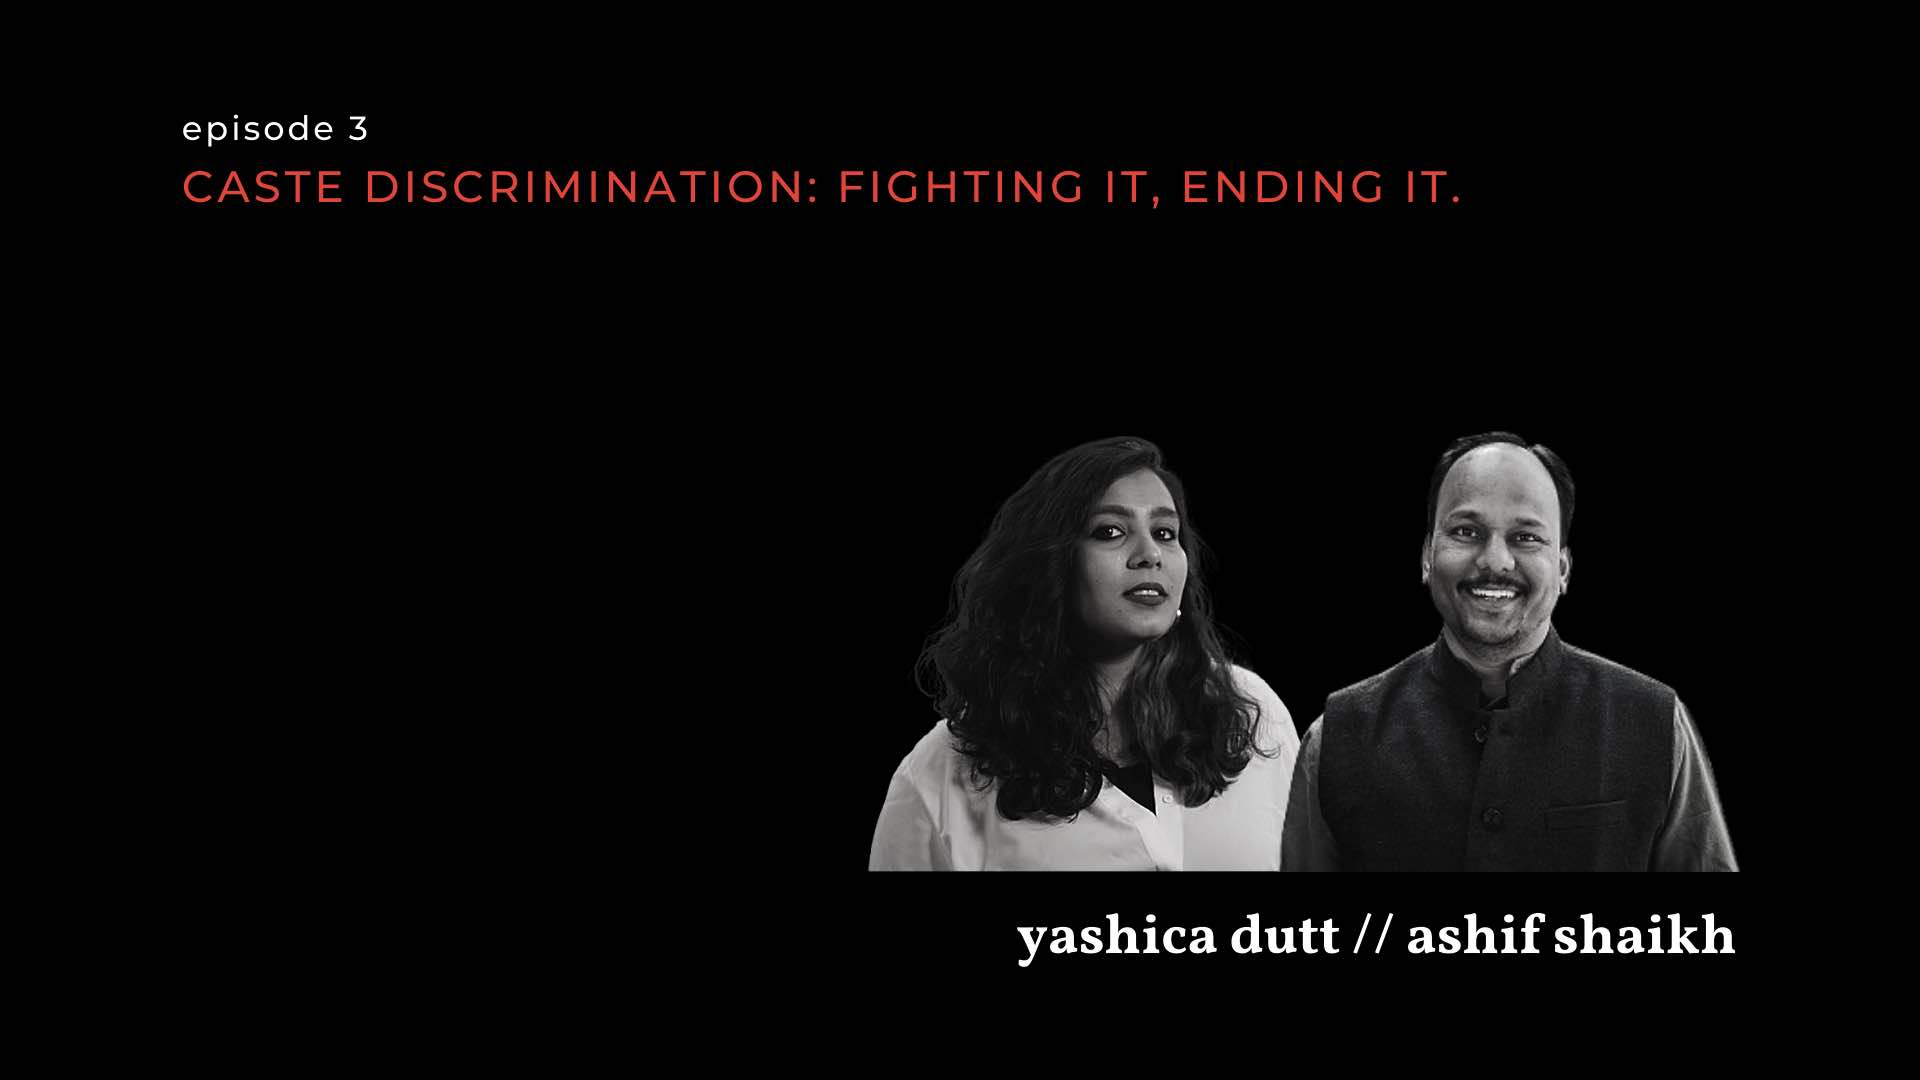 image of yashica dutt and ashif shiekh for on the contrary-caste discrimination